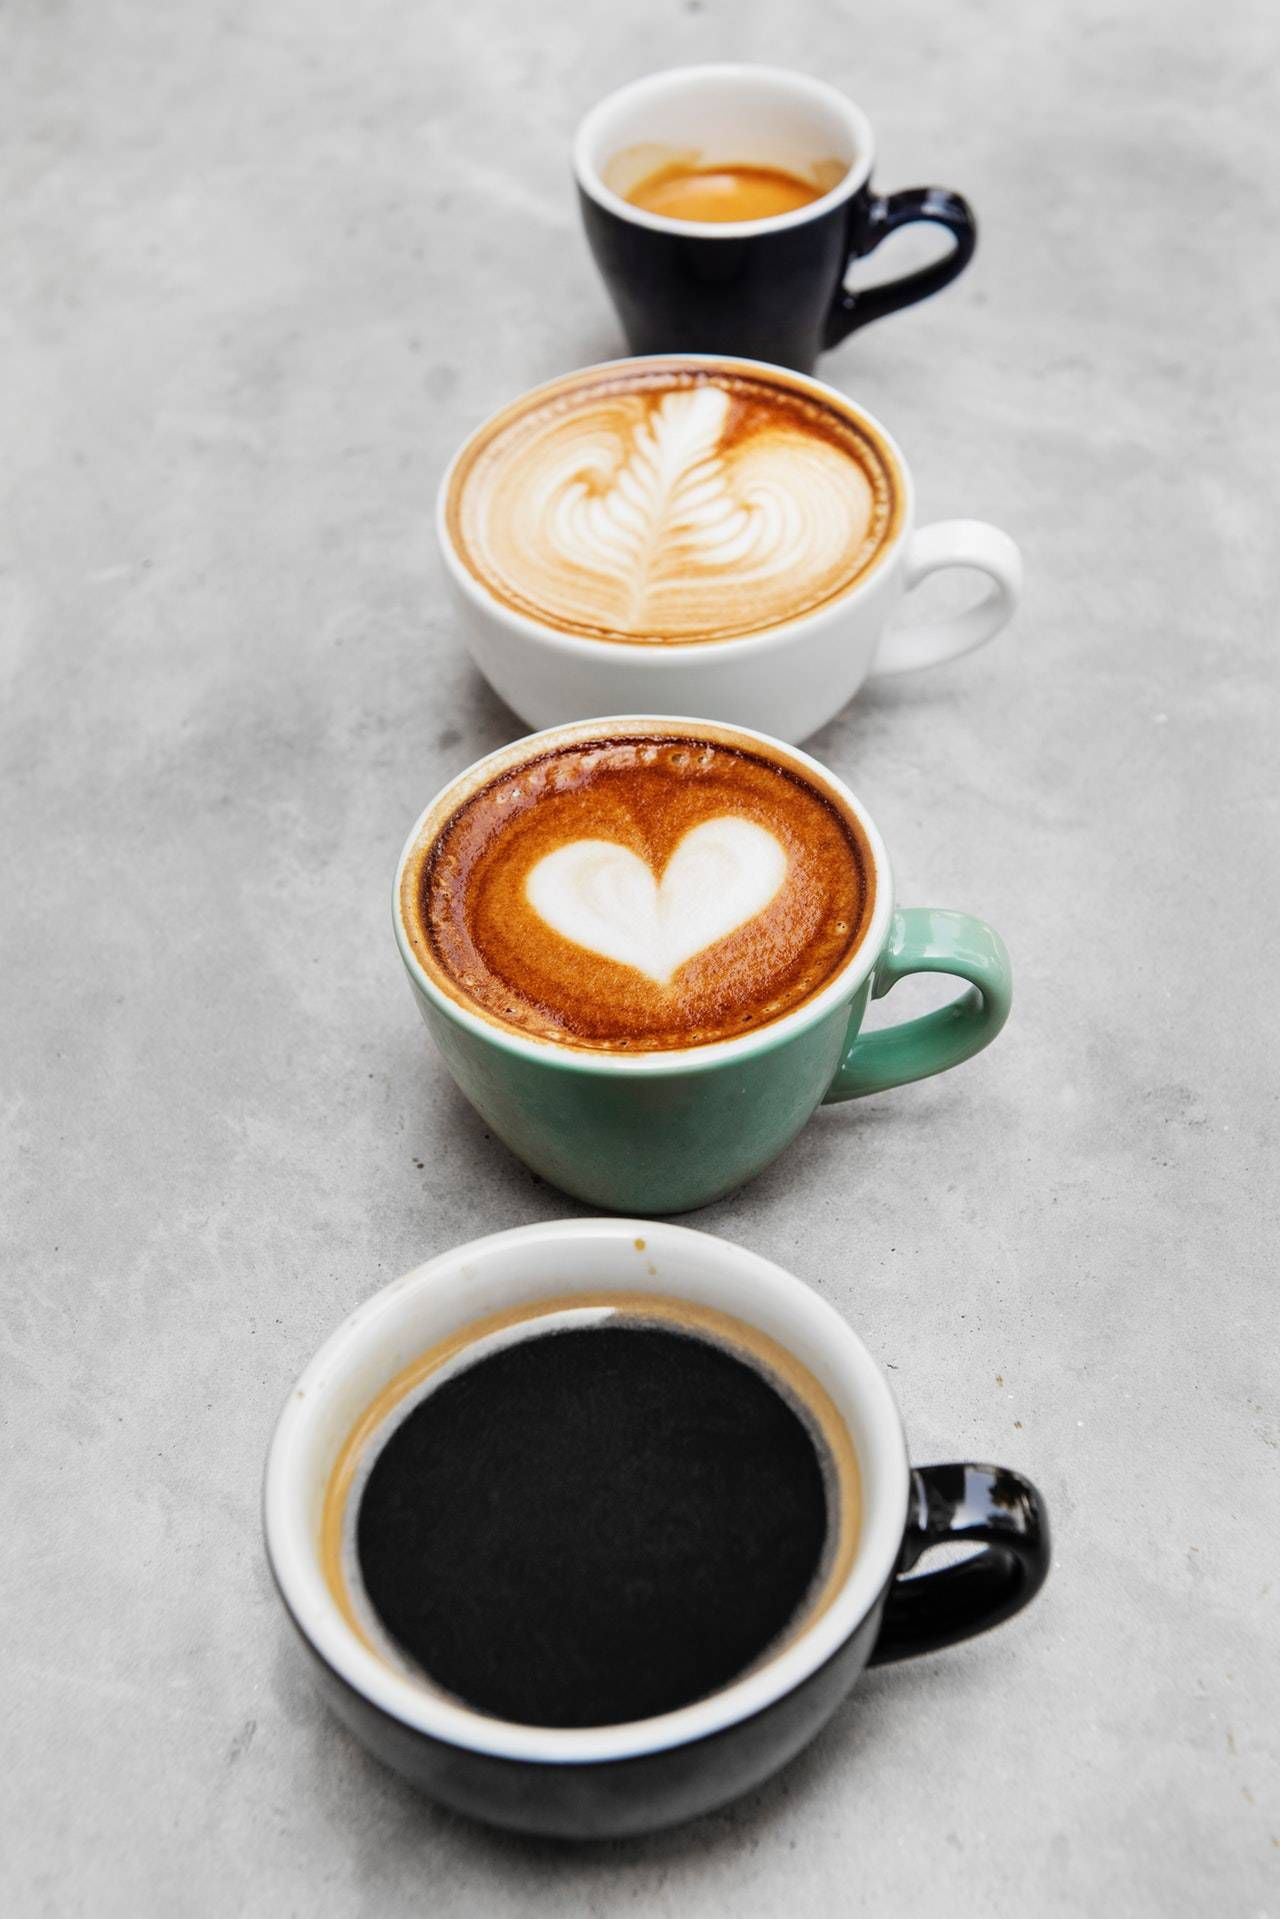 Espresso vs Coffee What's the difference? Keto coffee